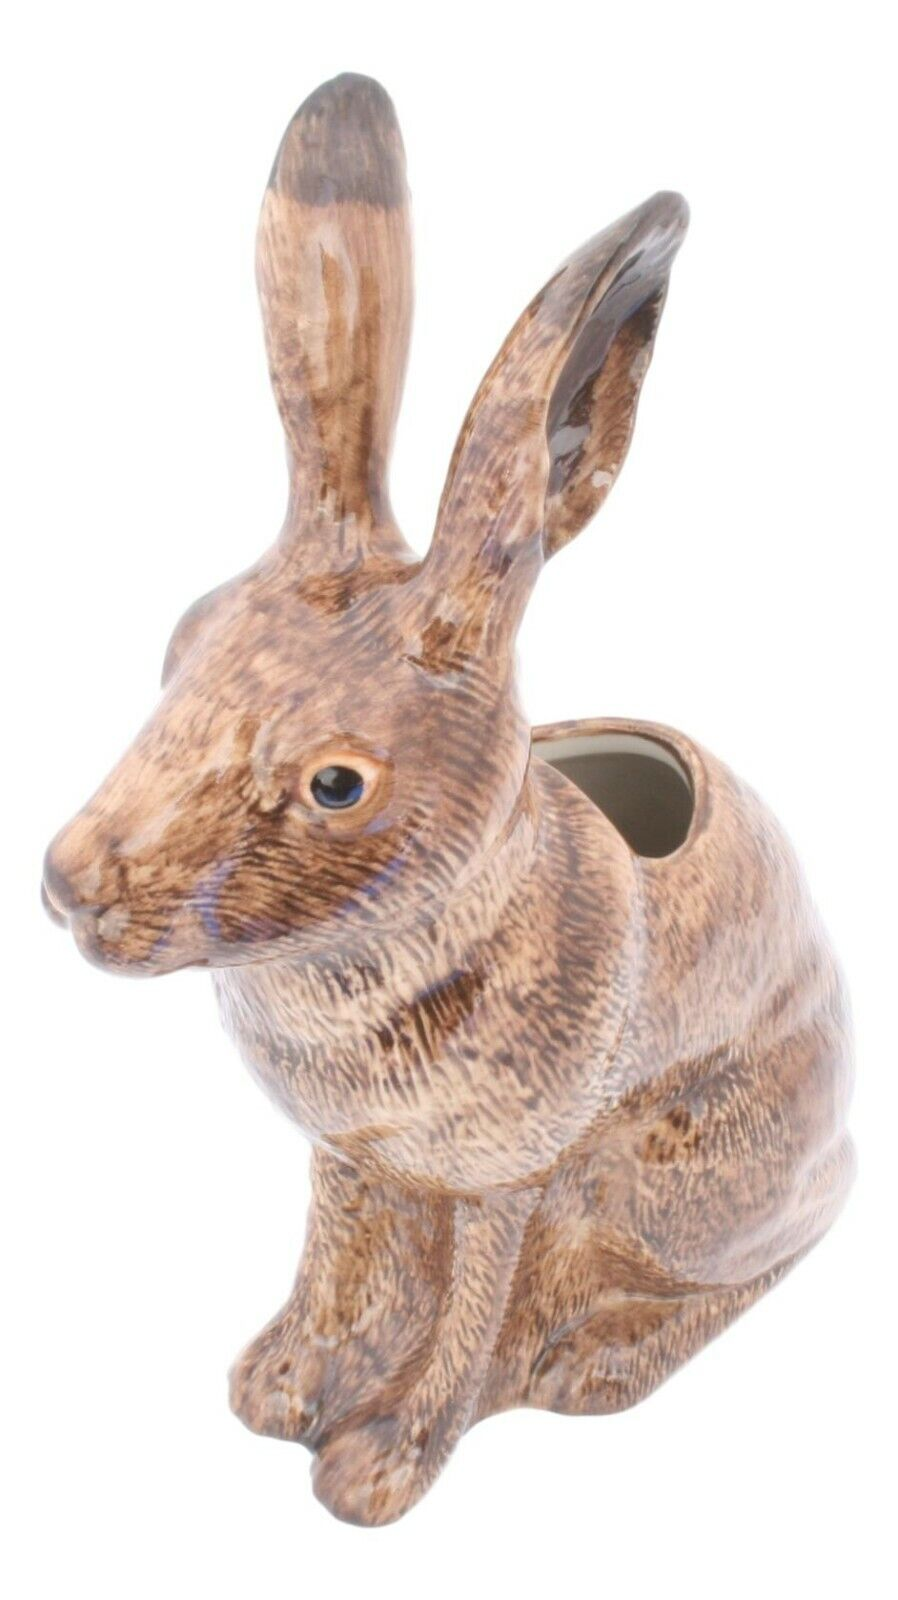 Hare Flower Vase by Quail Pottery Ceramics - Large